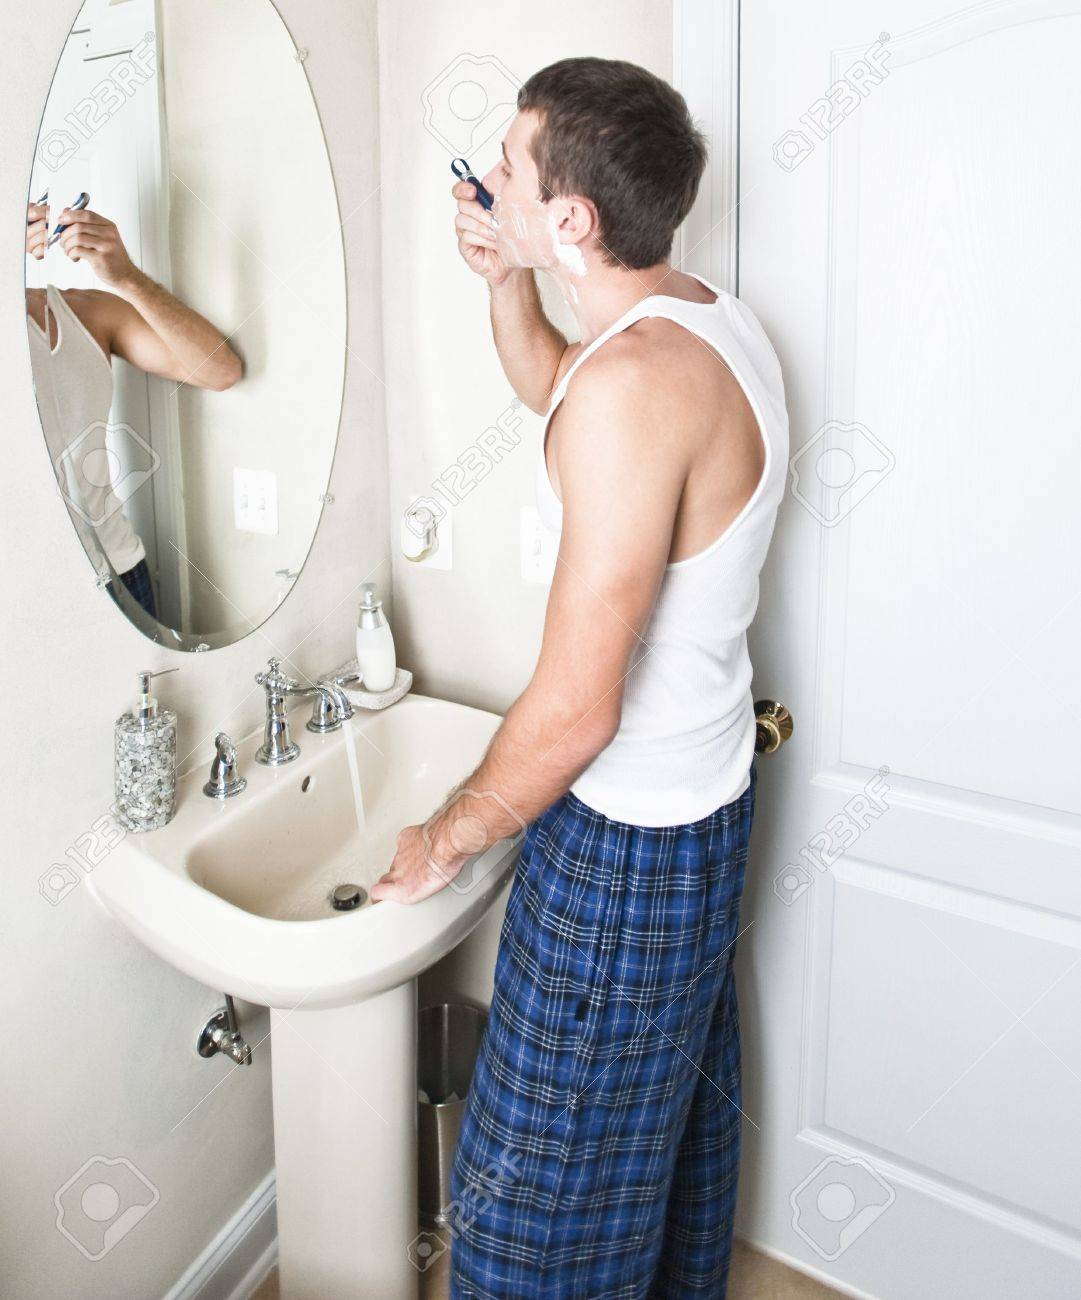 Young man in bathroom looking in the mirror and shaving. Vertical shot. Stock Photo - 6248866